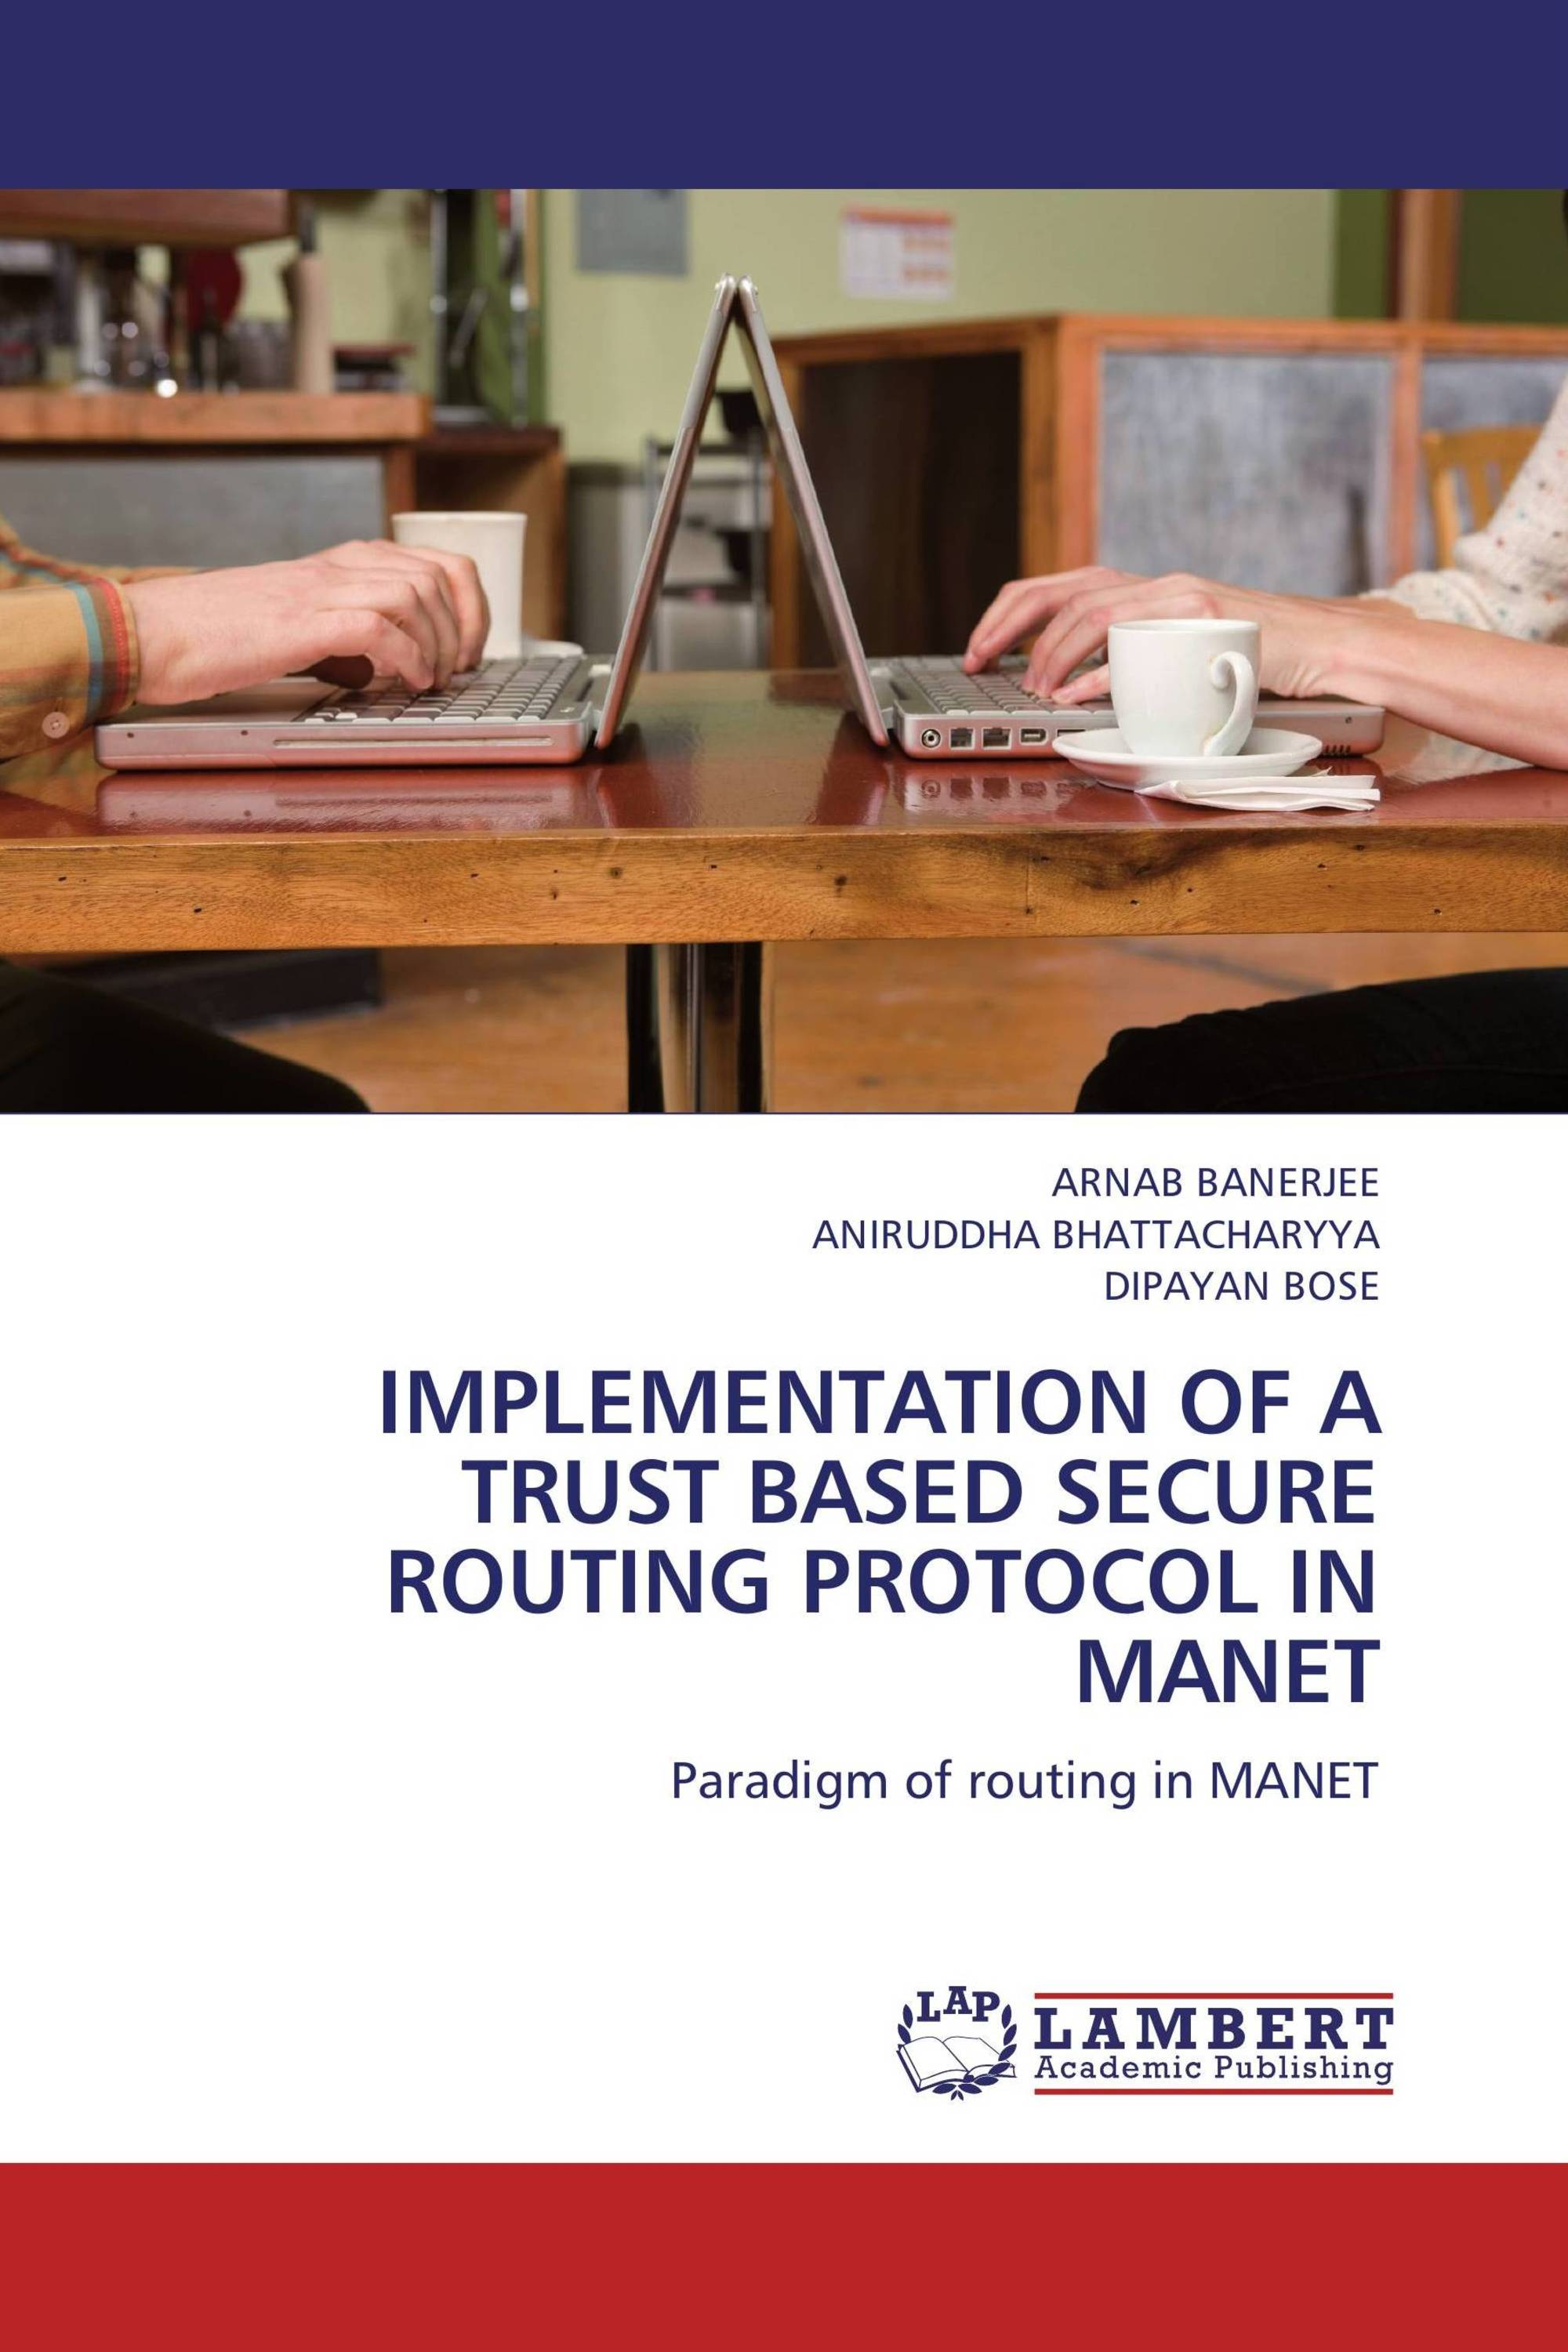 IMPLEMENTATION OF A TRUST BASED SECURE ROUTING PROTOCOL IN MANET